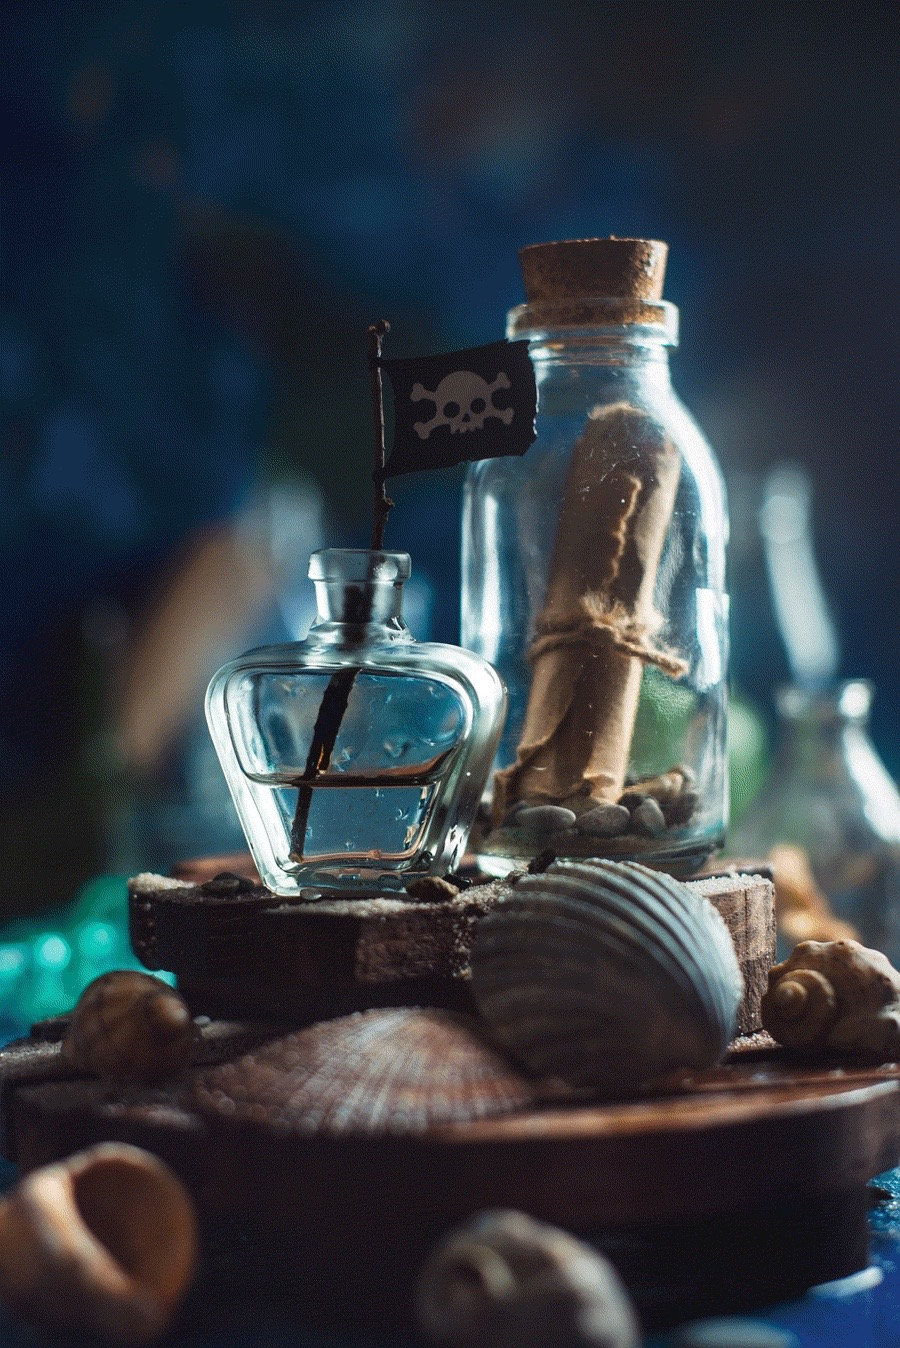 Dina-Belenko-Pirate-Still-LIfe-All_process-GIF